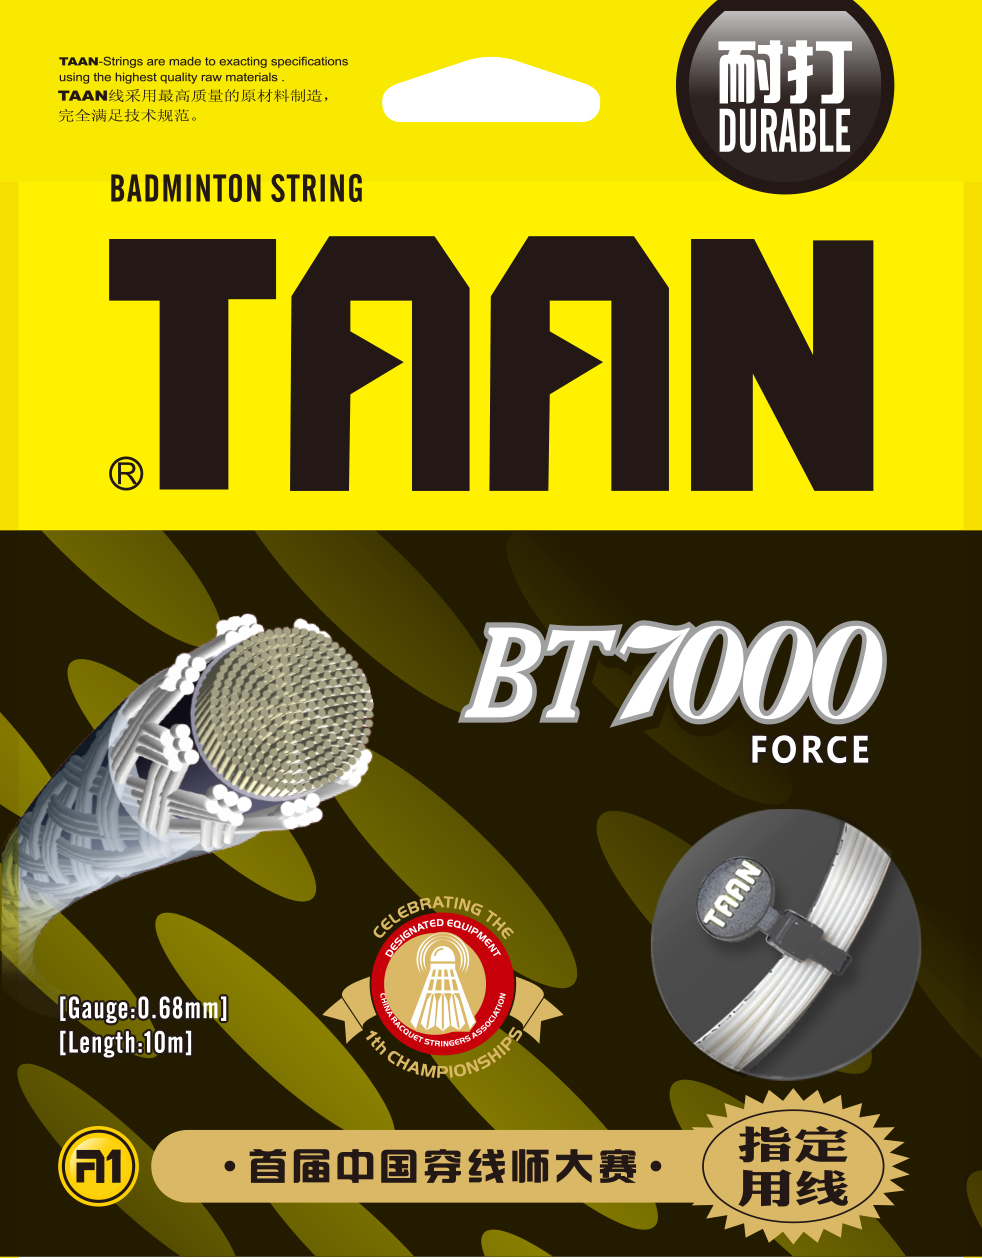 Струна TAAN BT7000 FORCE 0,68мм (10 метров).